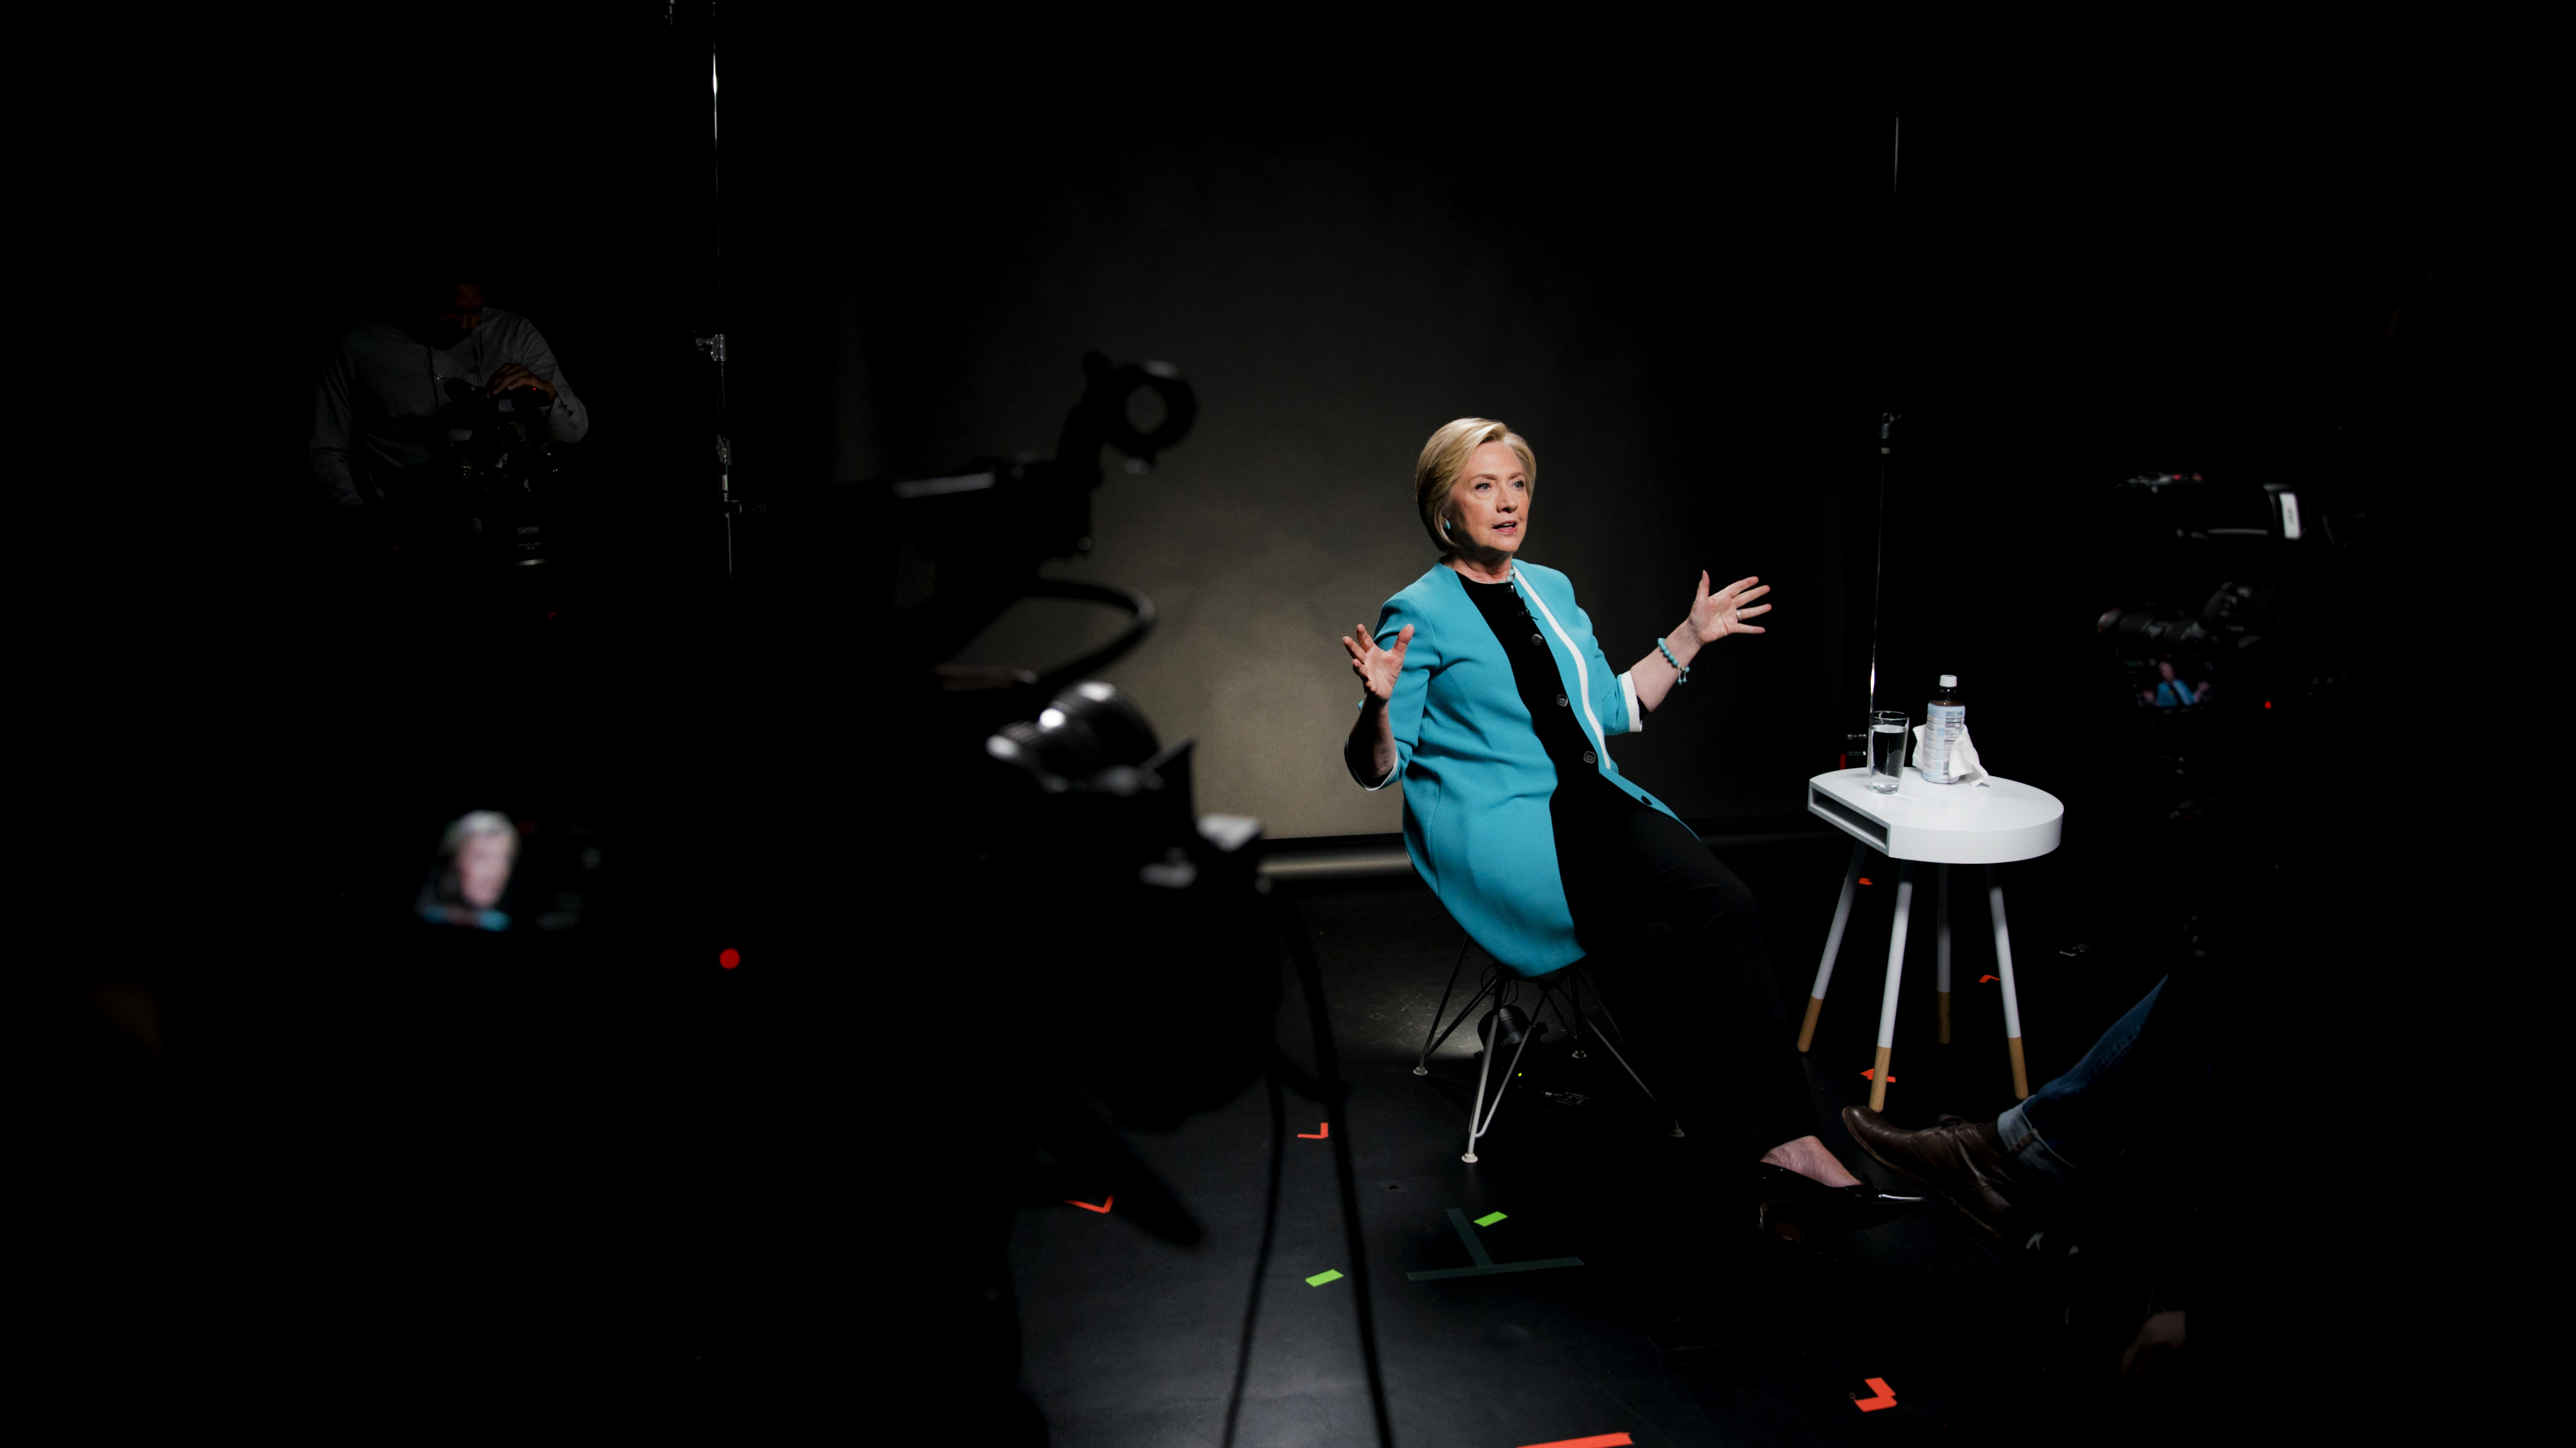 Hillary Clinton during an interview with Vox's Ezra Klein on September 12, 2017.